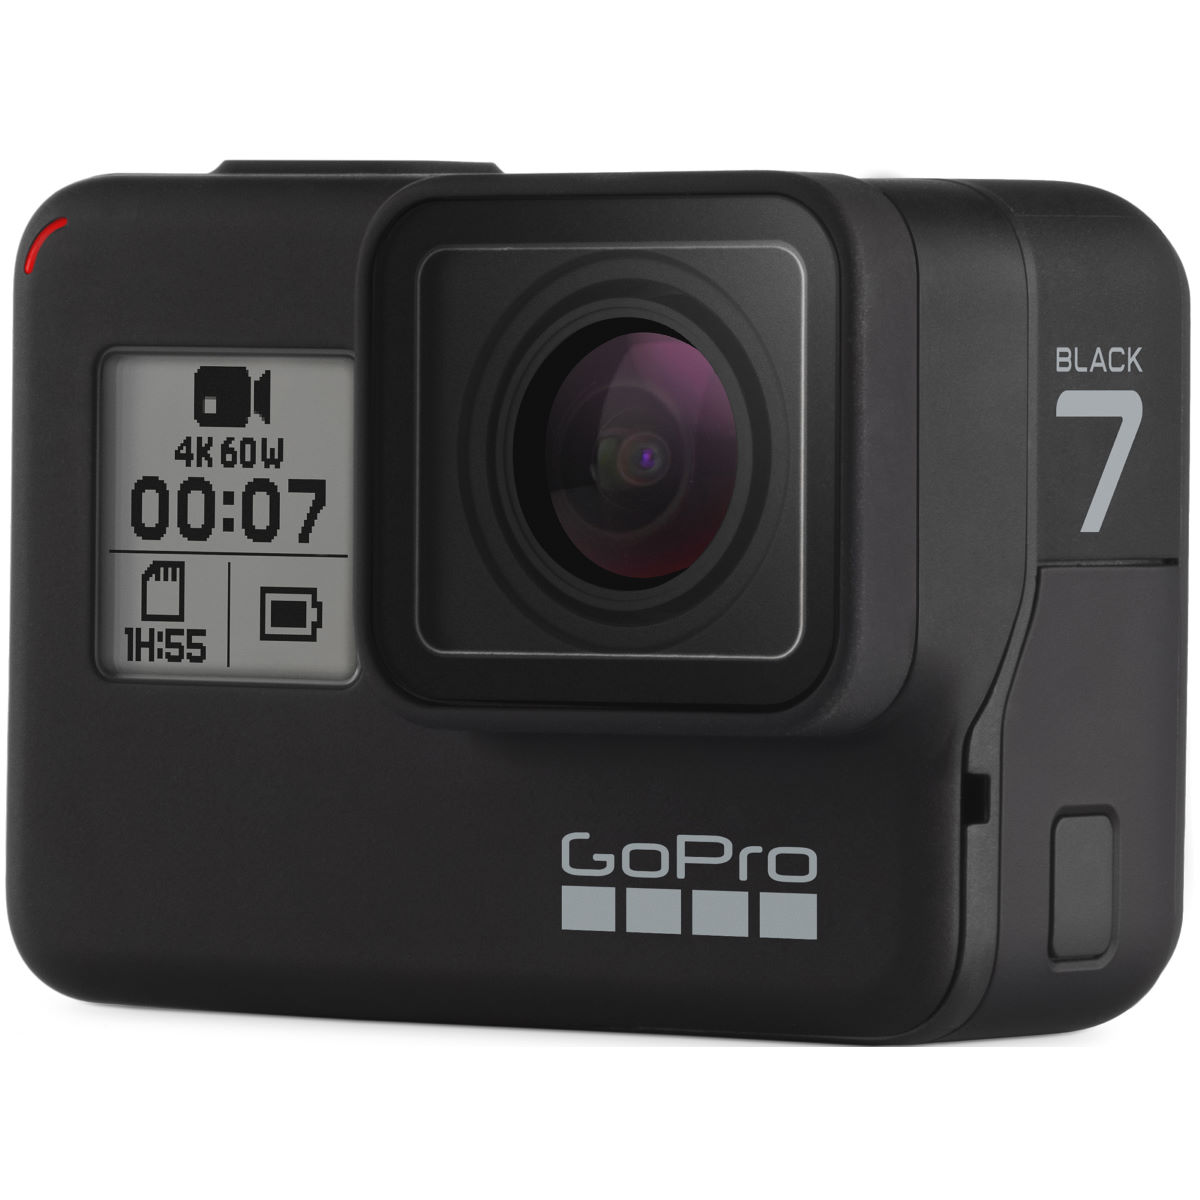 GoPro HERO7 Black - Cámaras de vídeo y fotos